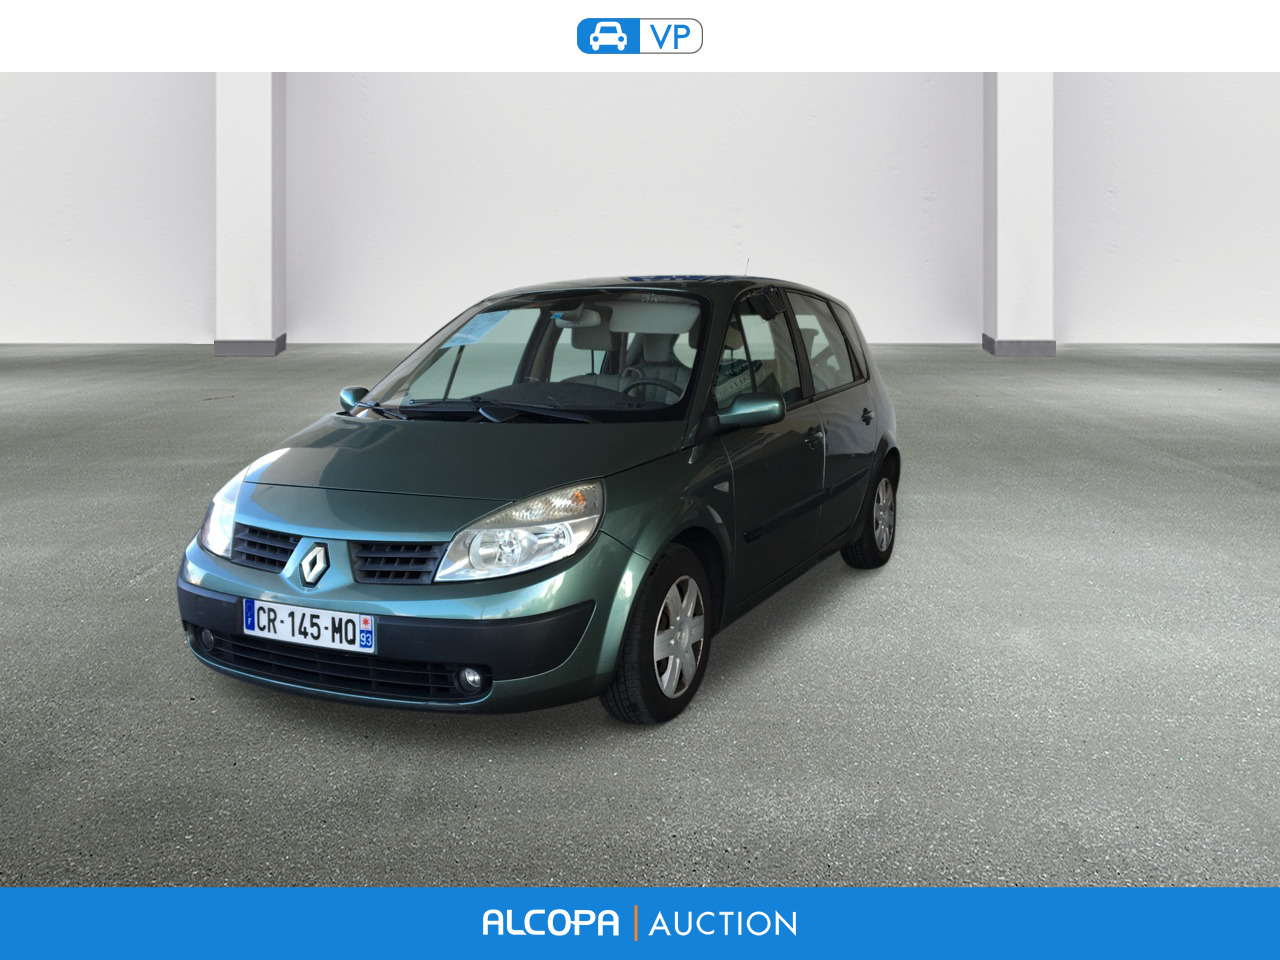 renault scenic 1 6 16v confort expression alcopa auction. Black Bedroom Furniture Sets. Home Design Ideas